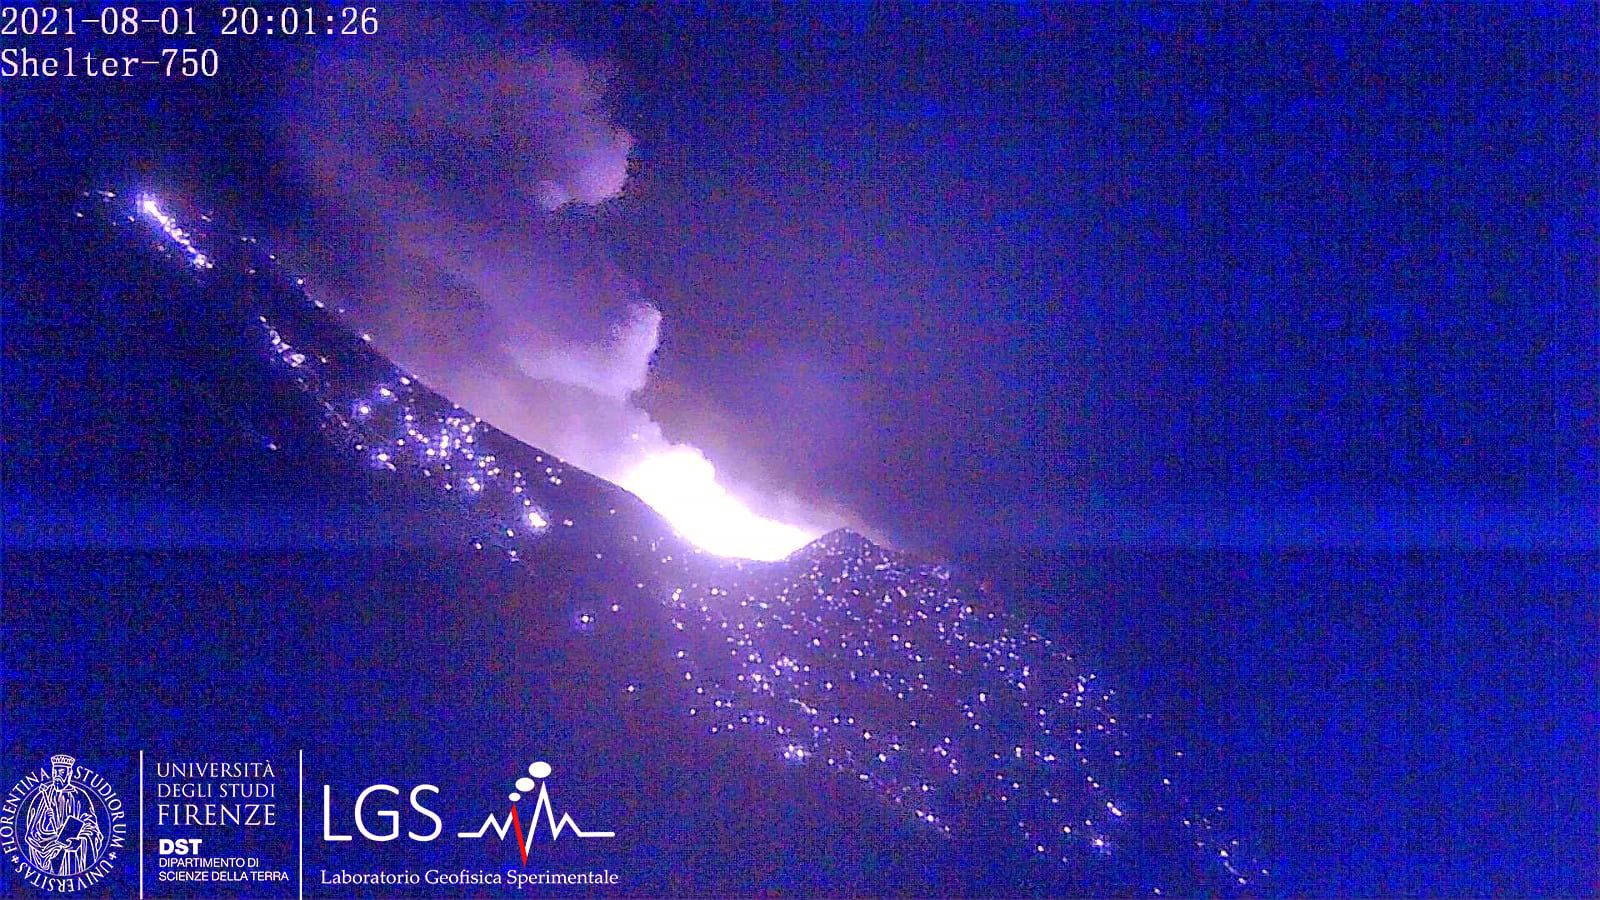 Stromboli - similar strong explosion - image archives cam LGS / 01.0.2021 / 20h01